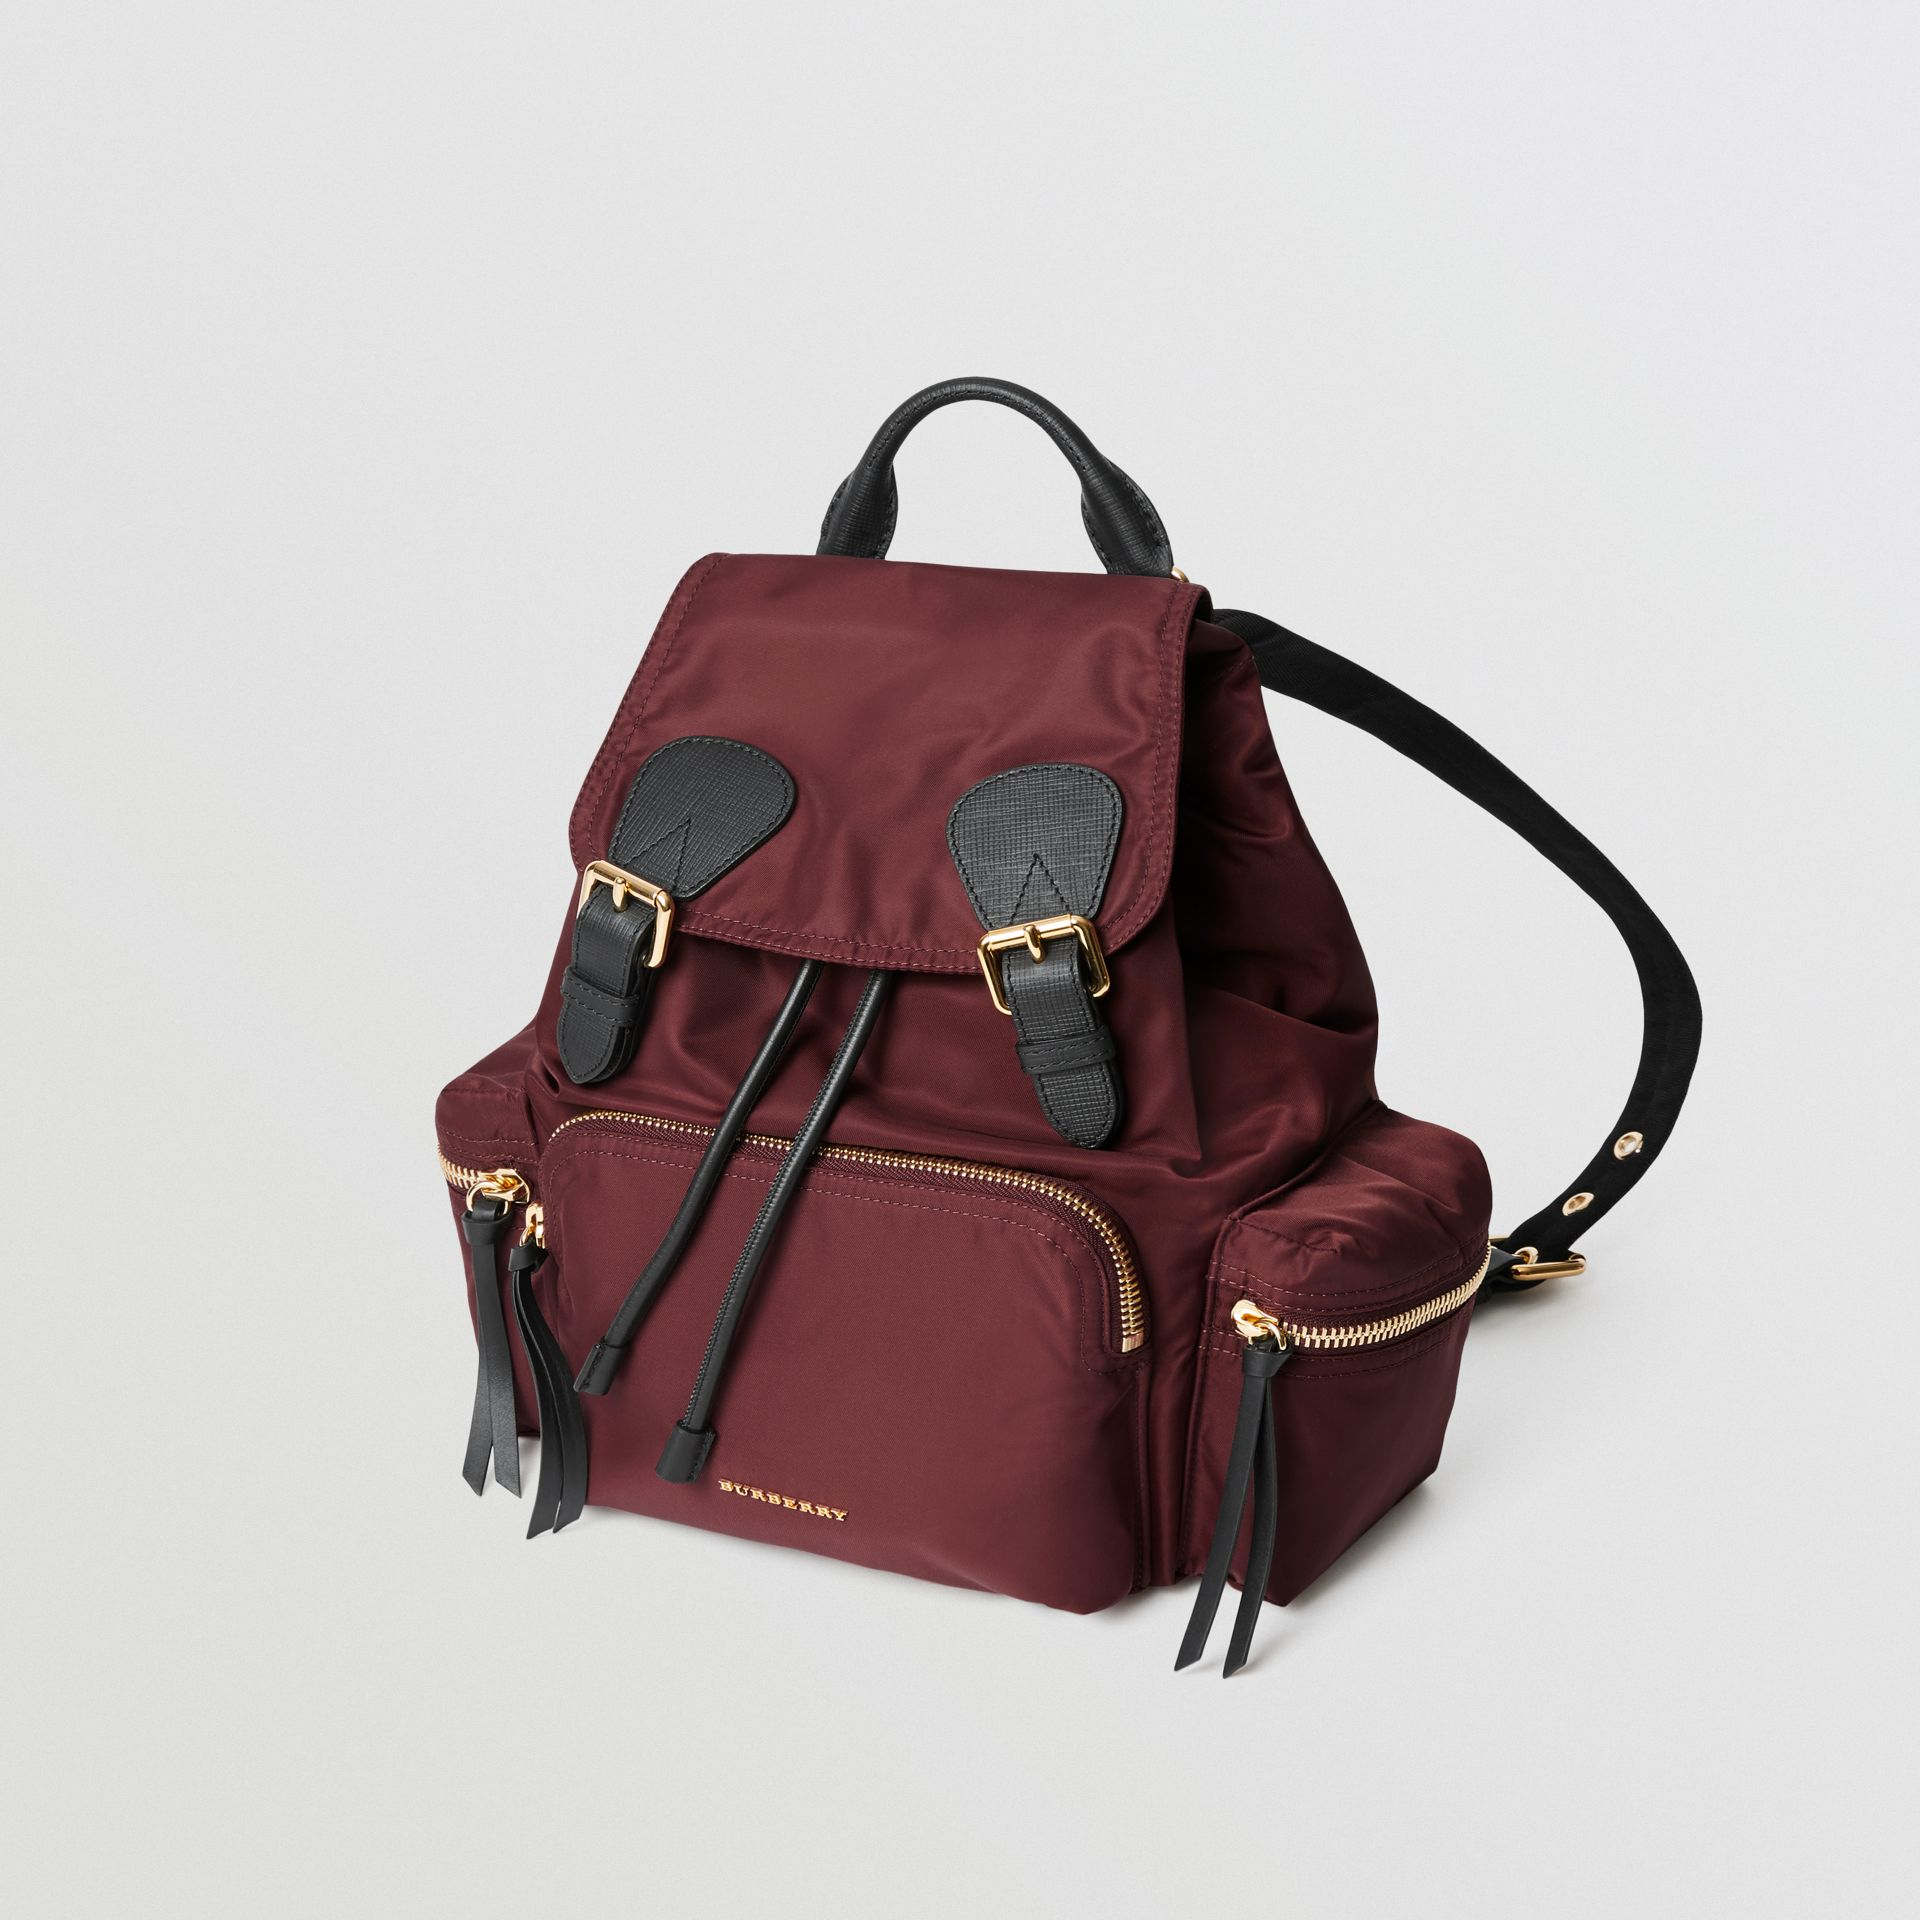 Sac The Rucksack moyen en nylon technique et cuir (Rouge Bourgogne) - Femme | Burberry Canada - photo de la galerie 3